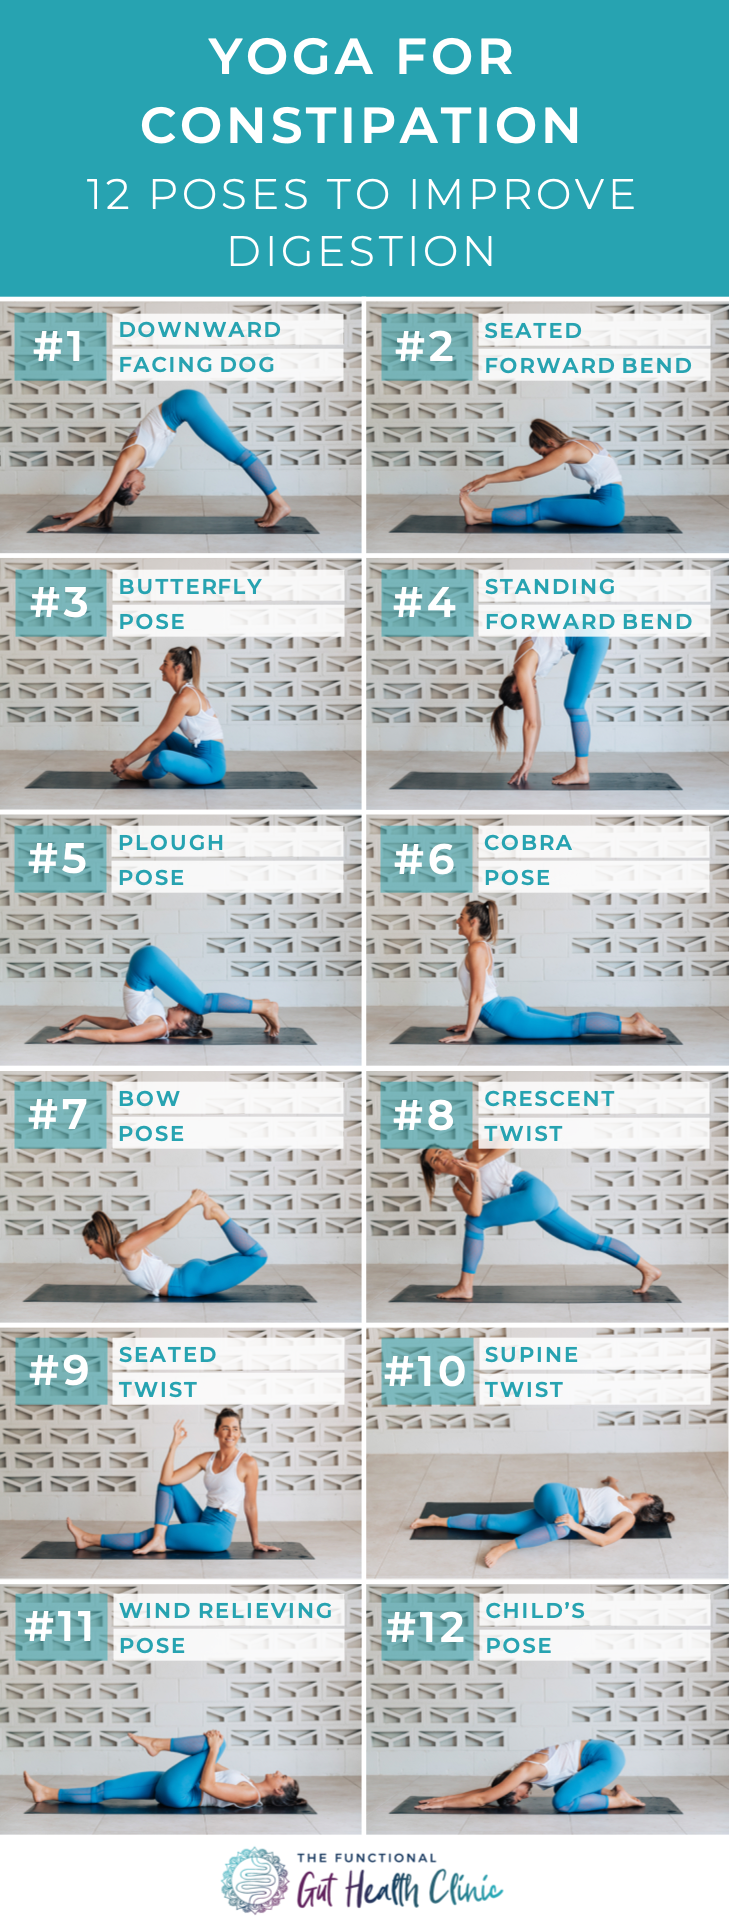 Yoga for Constipation - 32 Poses to Improve Digestion